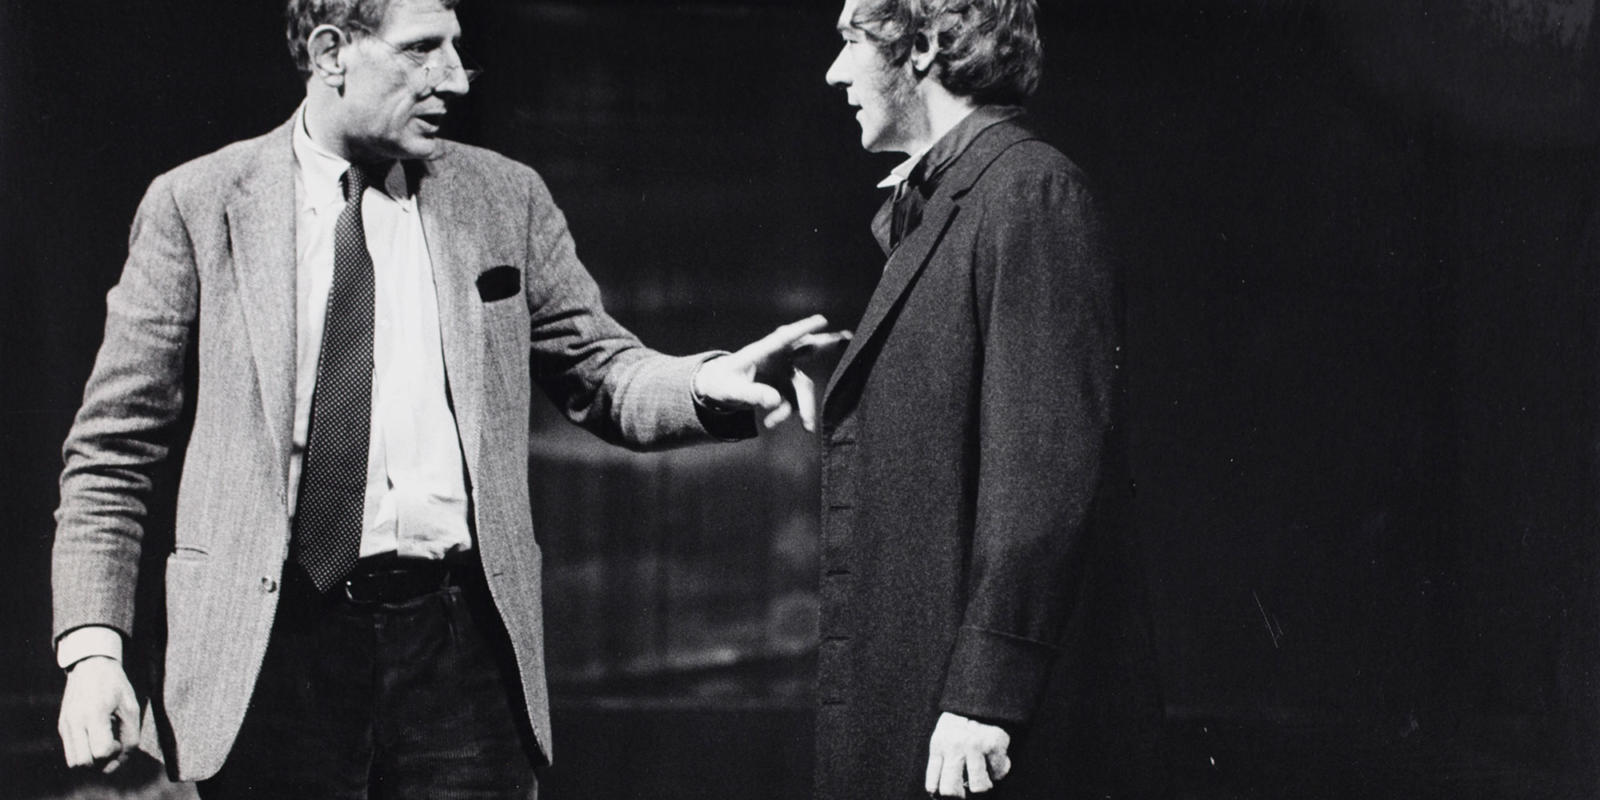 ENO The Turn of the Screw 1979: Director Jonathan Miller and Philip Langridge. With thanks to Gareth Roberts